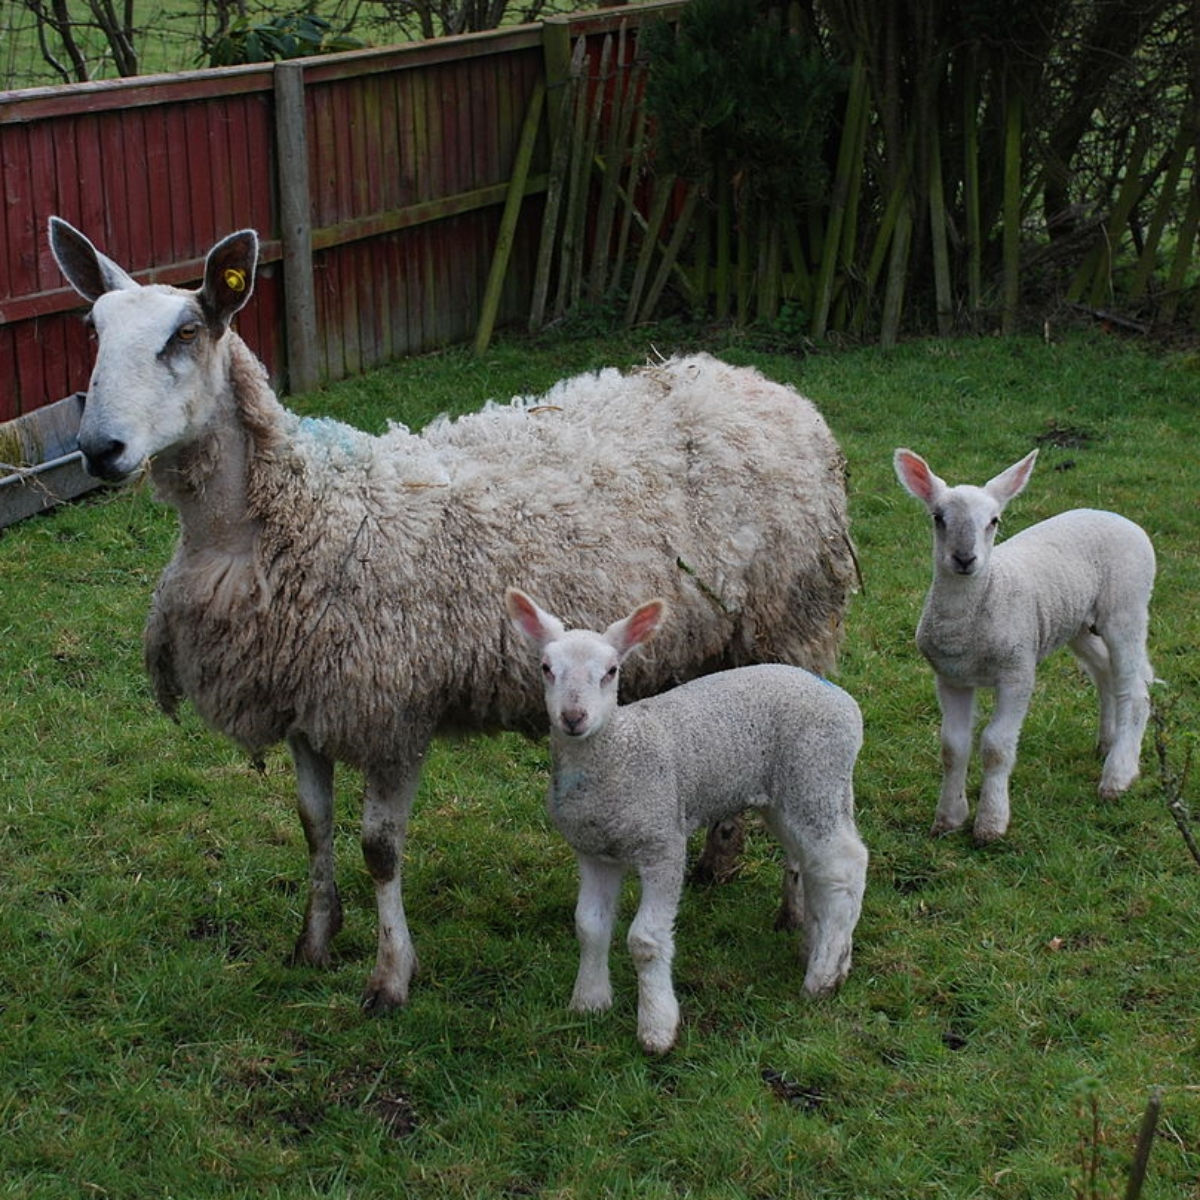 1280px-Ewe_and_lambs_in_the_garden.jpg